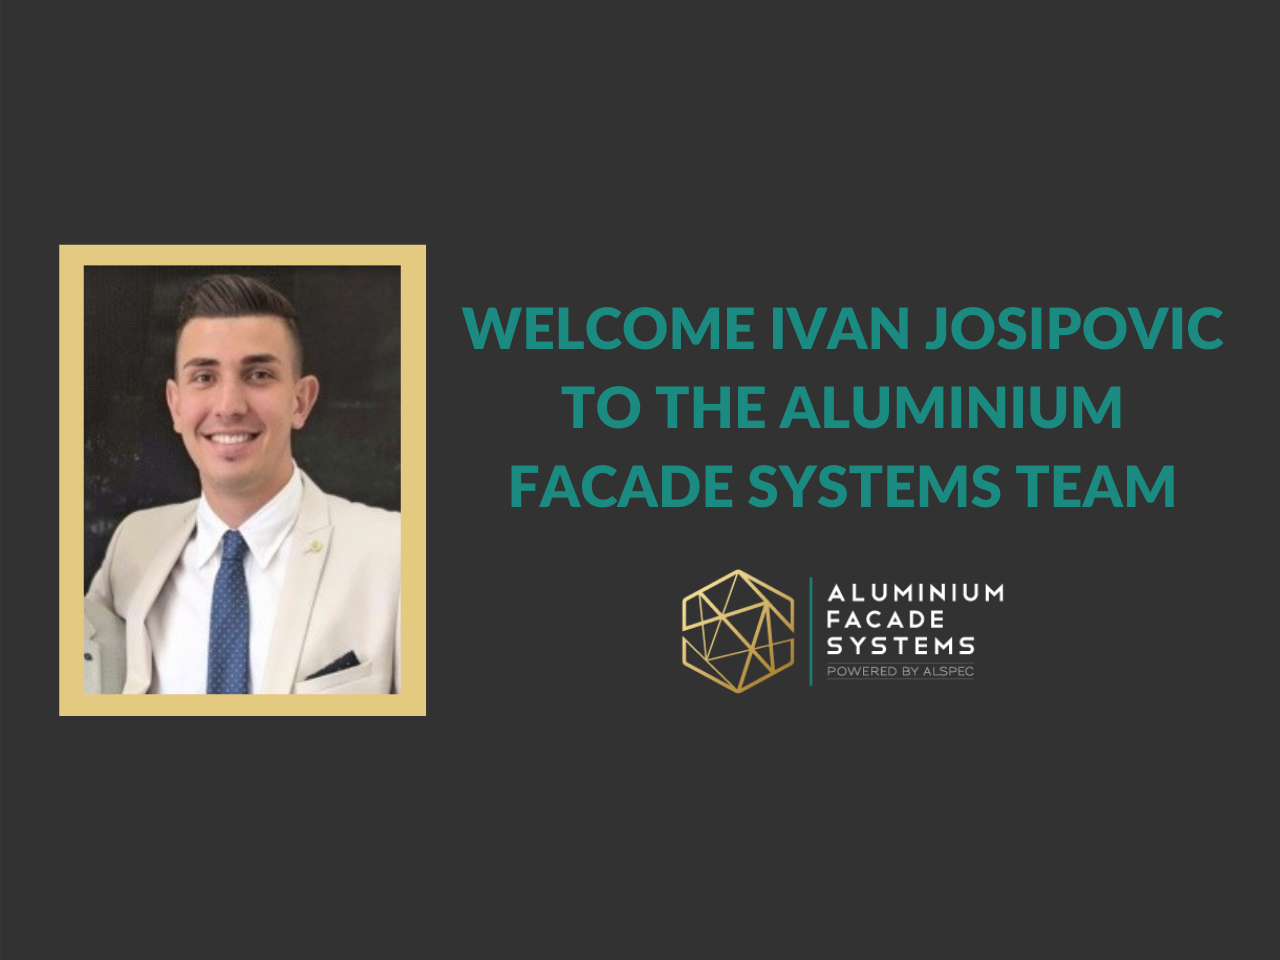 Welcome Ivan Josipovic to the Team